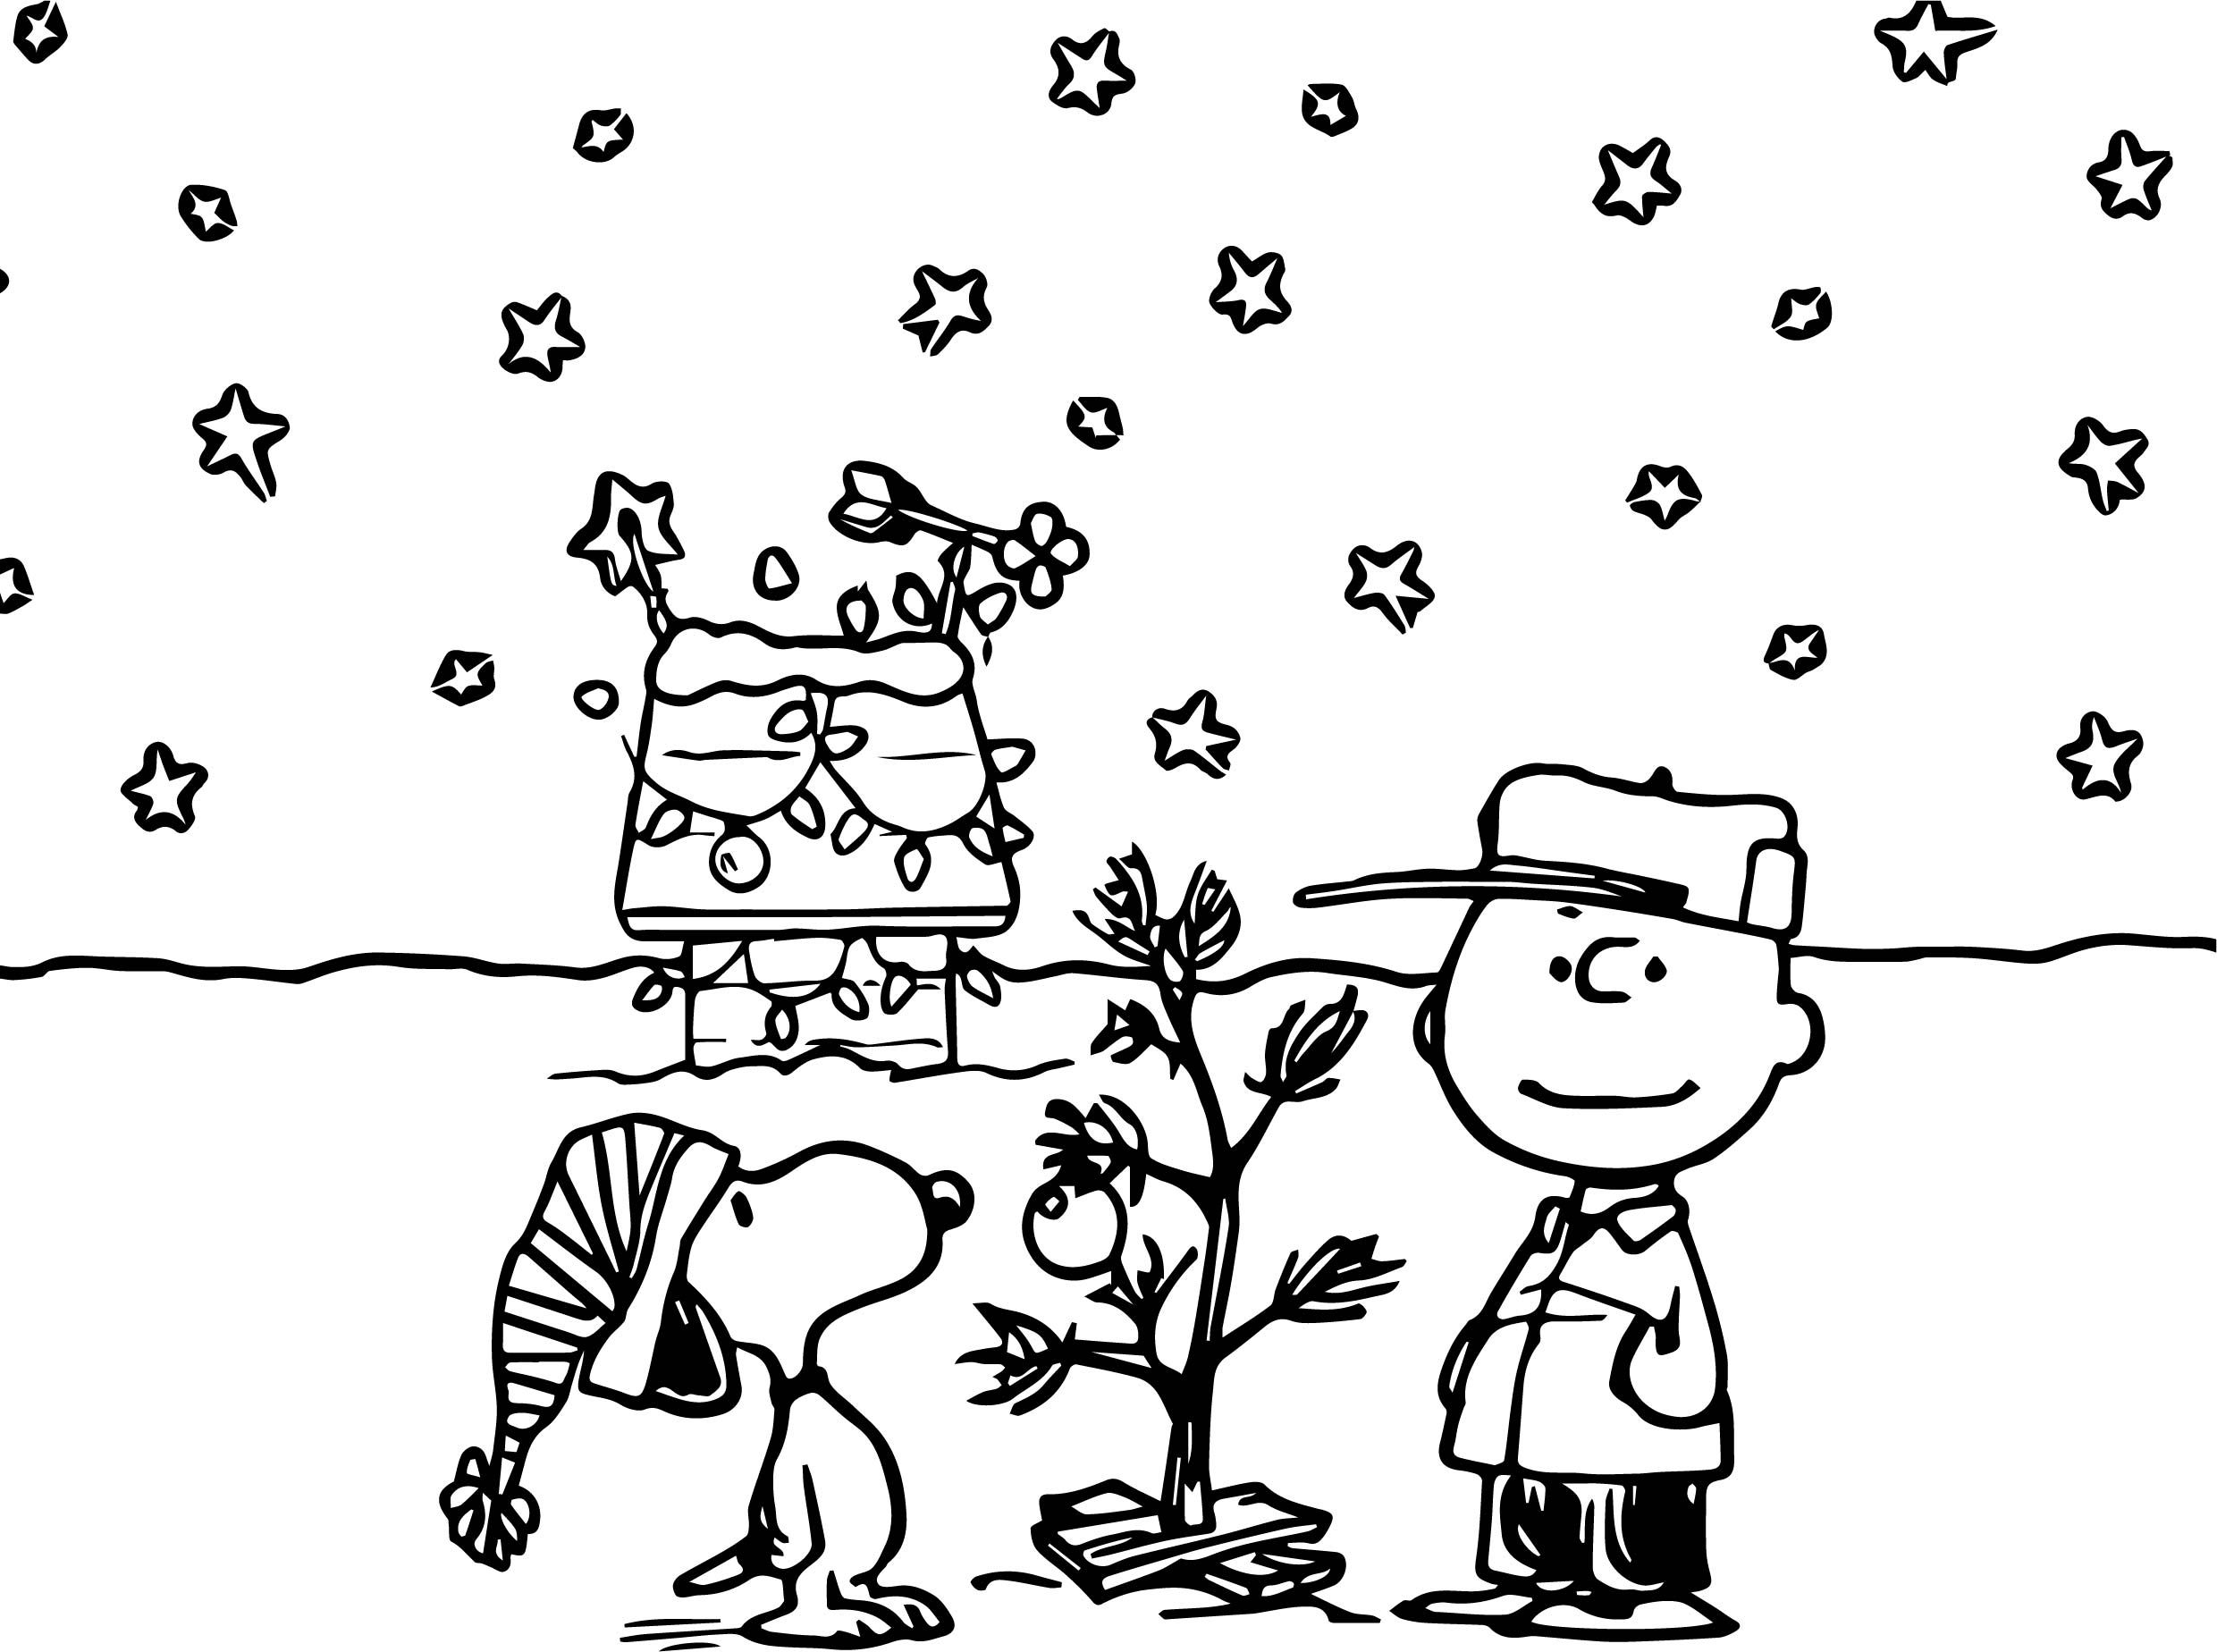 Awesome Holidays Charlie Brown Peanuts Comics Snoopy Christmas Coloring Page Snoopy Coloring Pages Christmas Coloring Books Christmas Colors